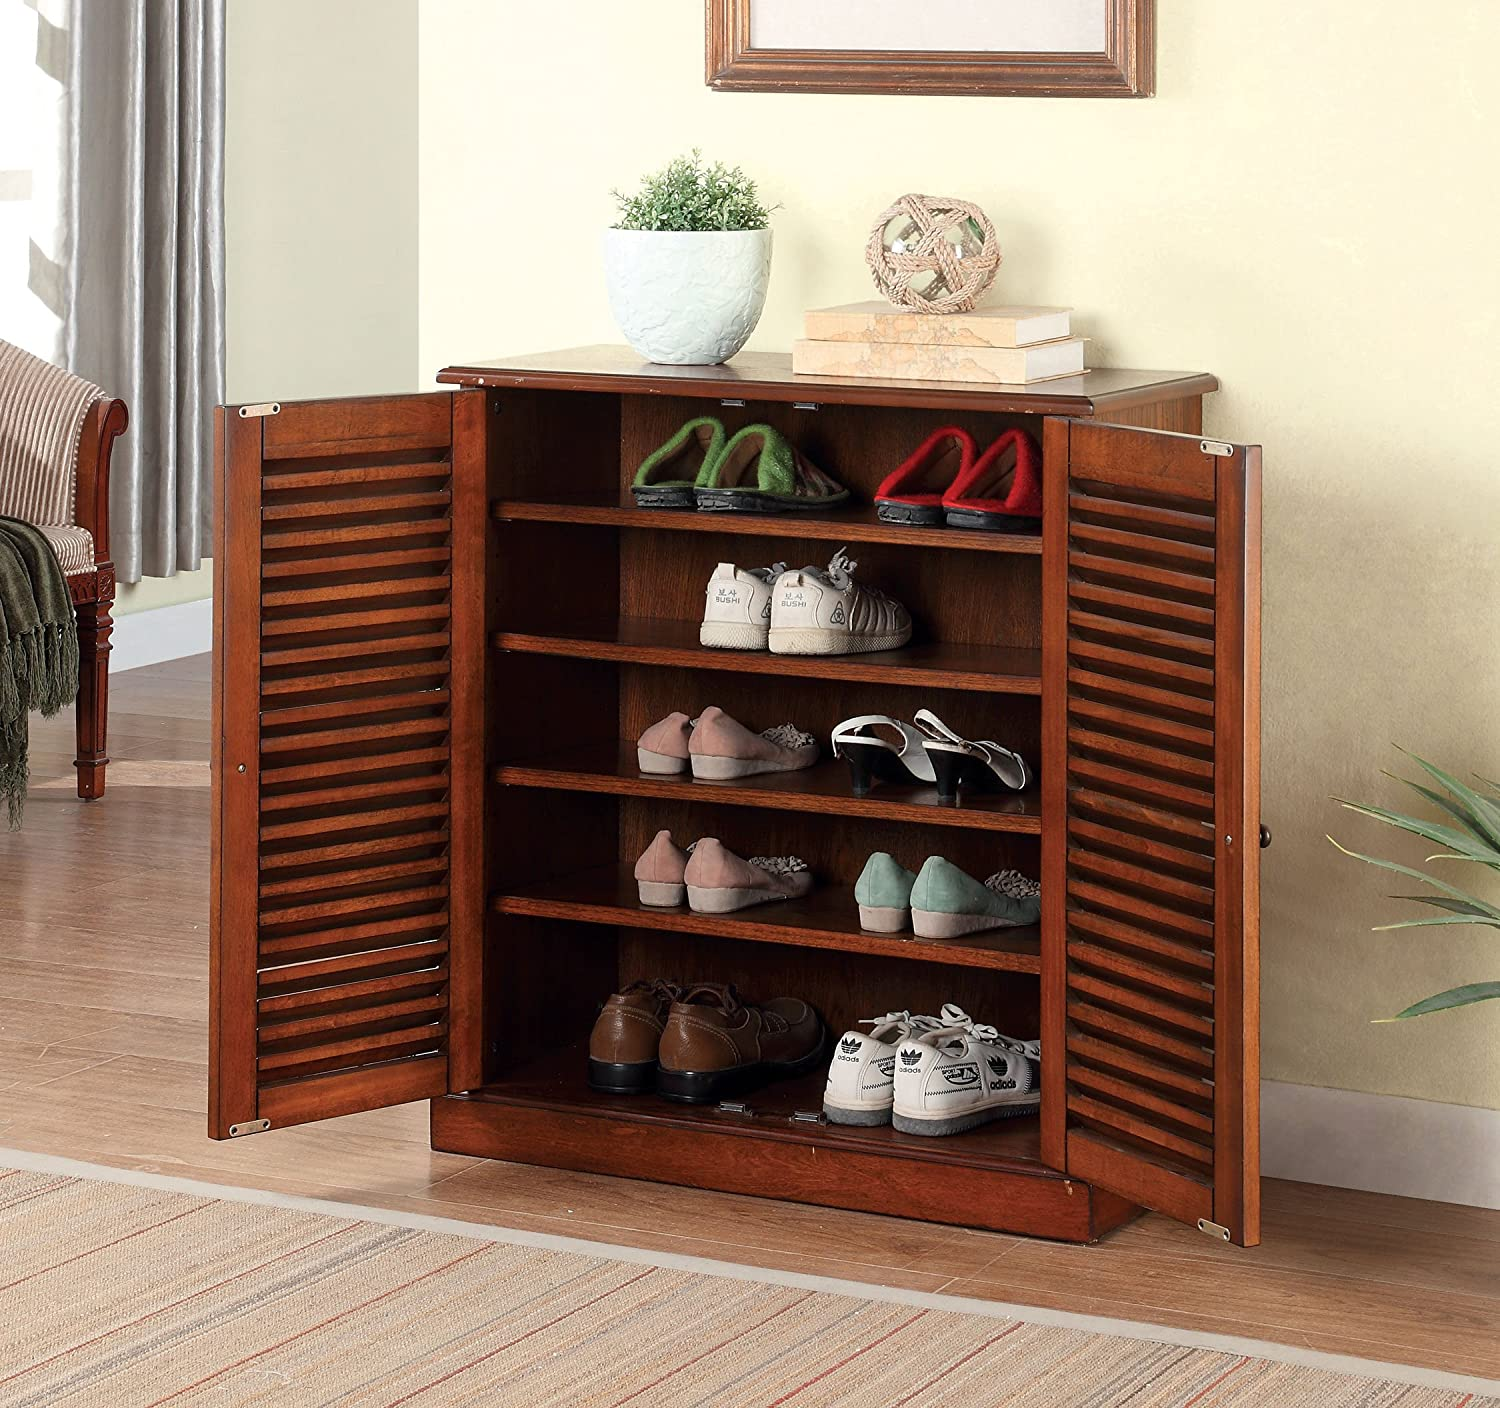 cabinet shoes beech your types use storage store of to shoe organizer varied